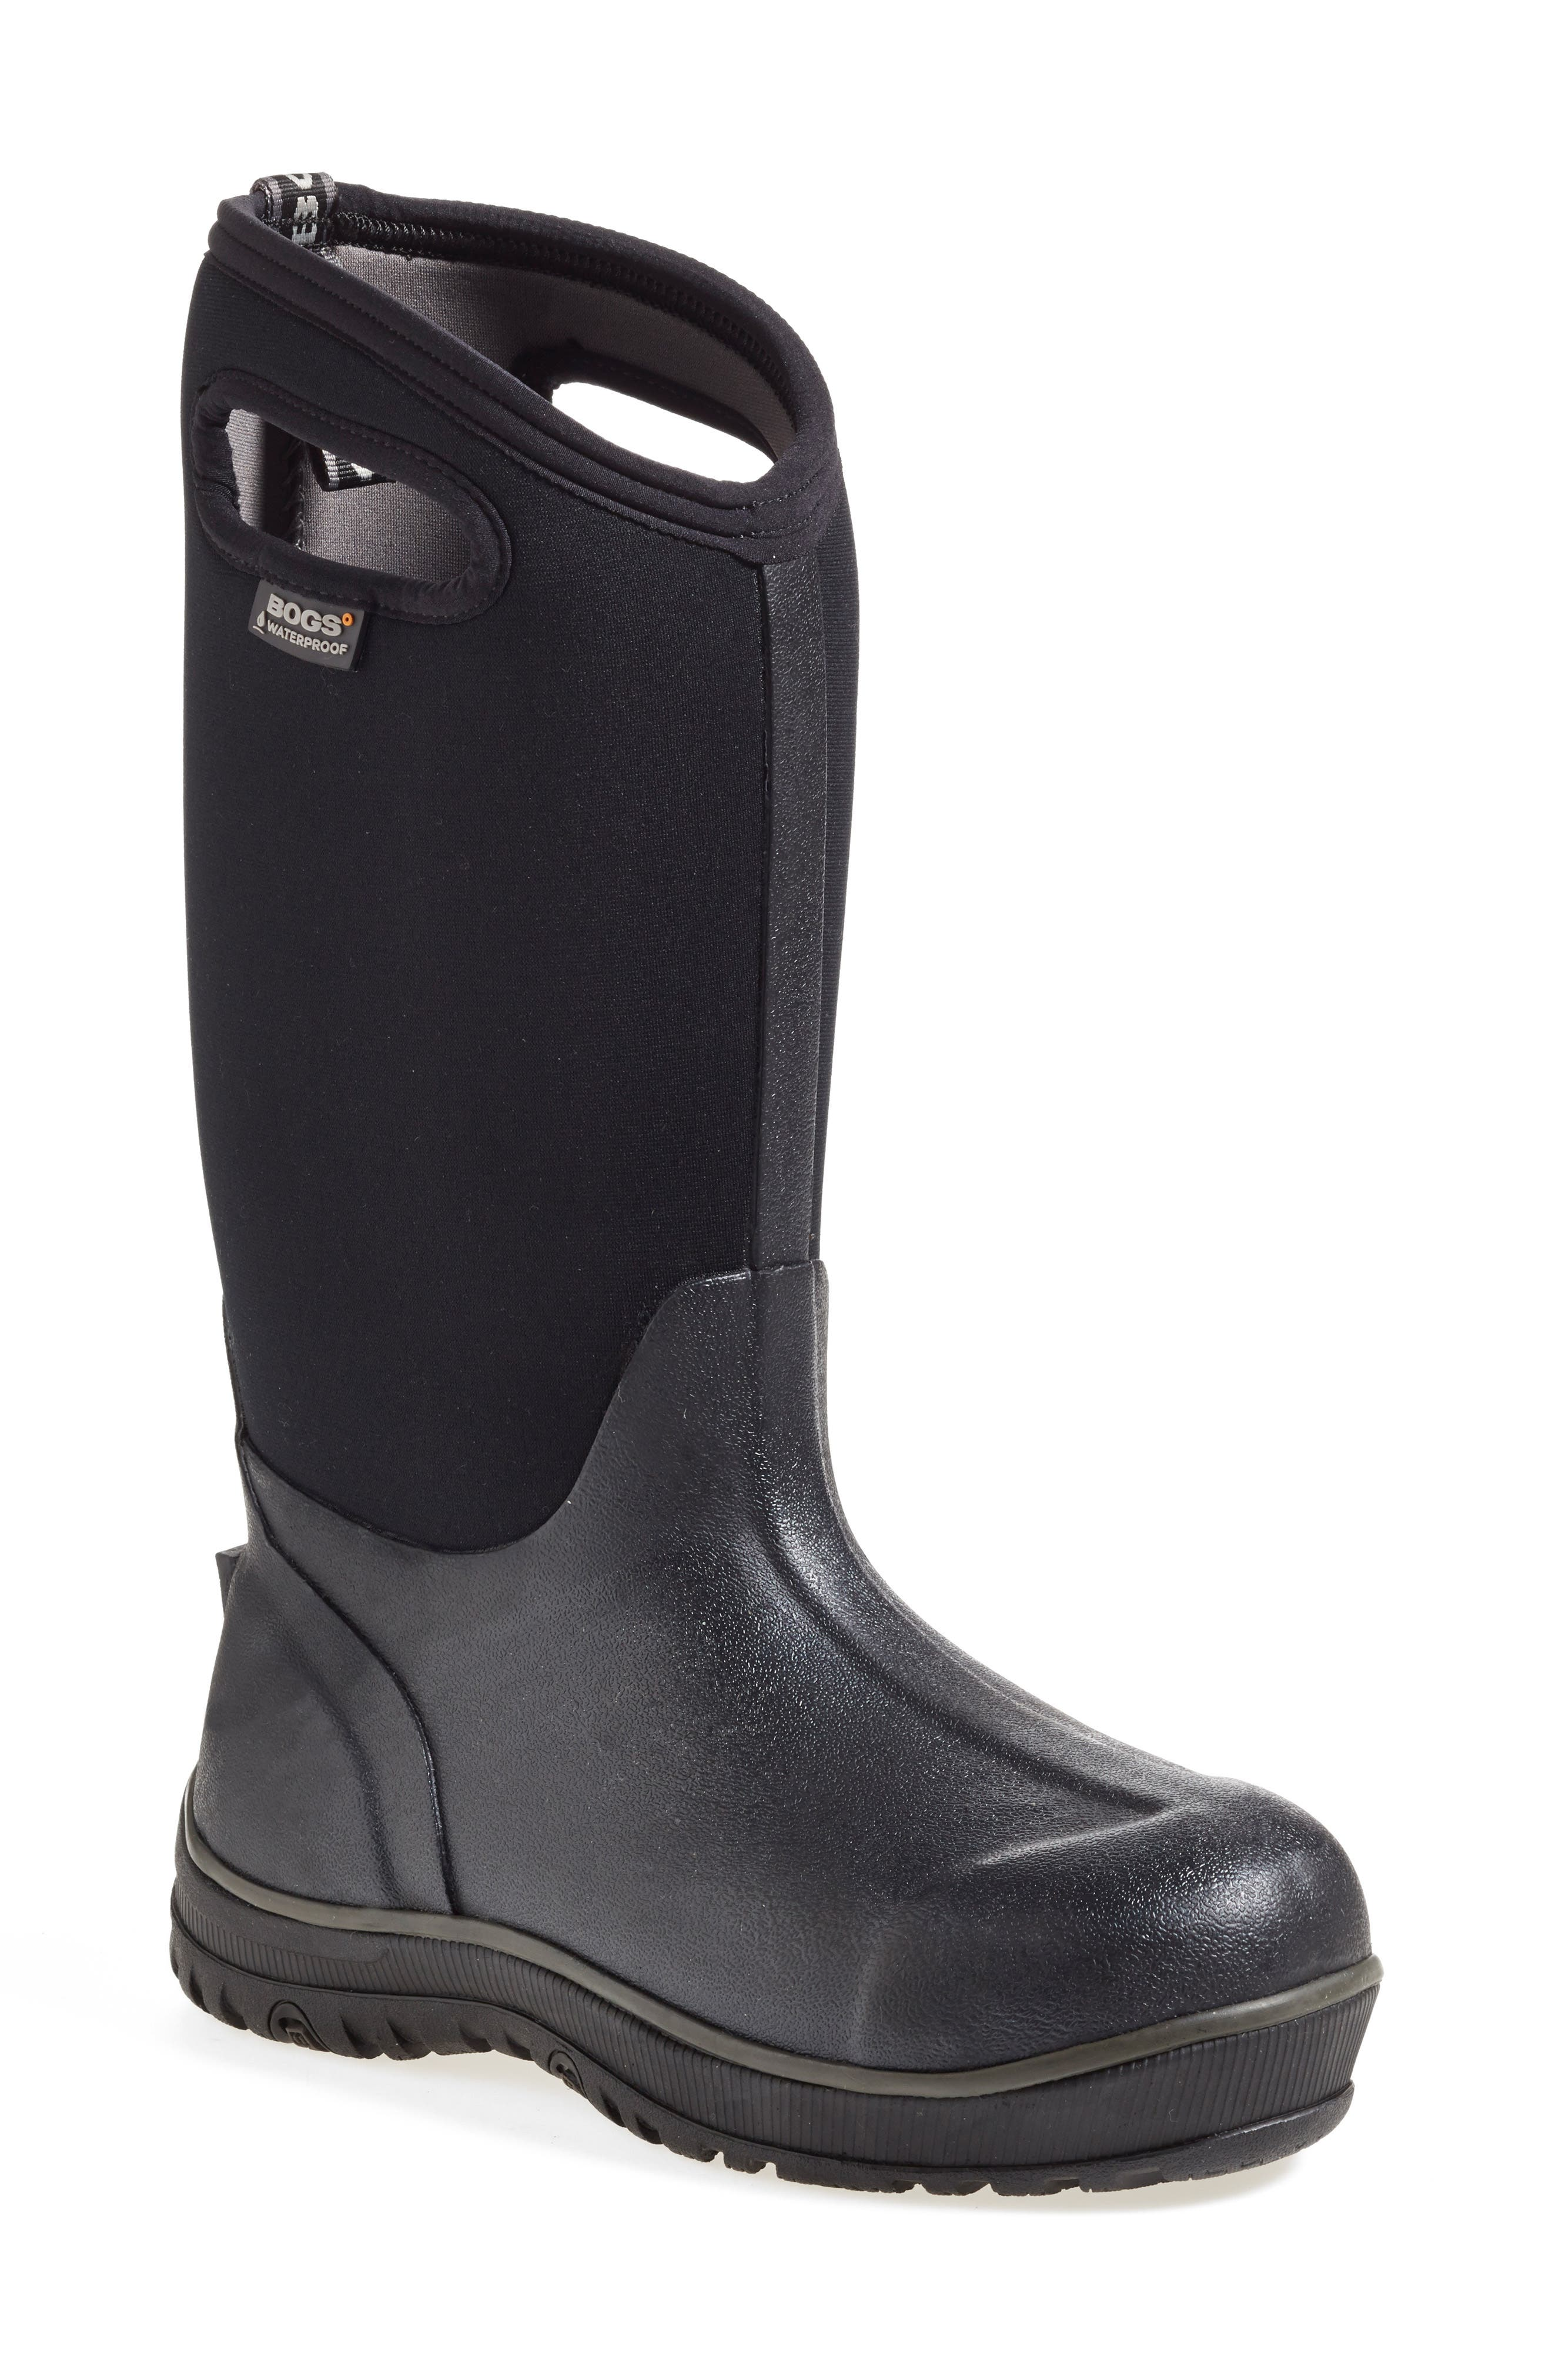 'Classic' Ultra High Waterproof Snow Boot with Cutout Handles,                             Alternate thumbnail 4, color,                             001